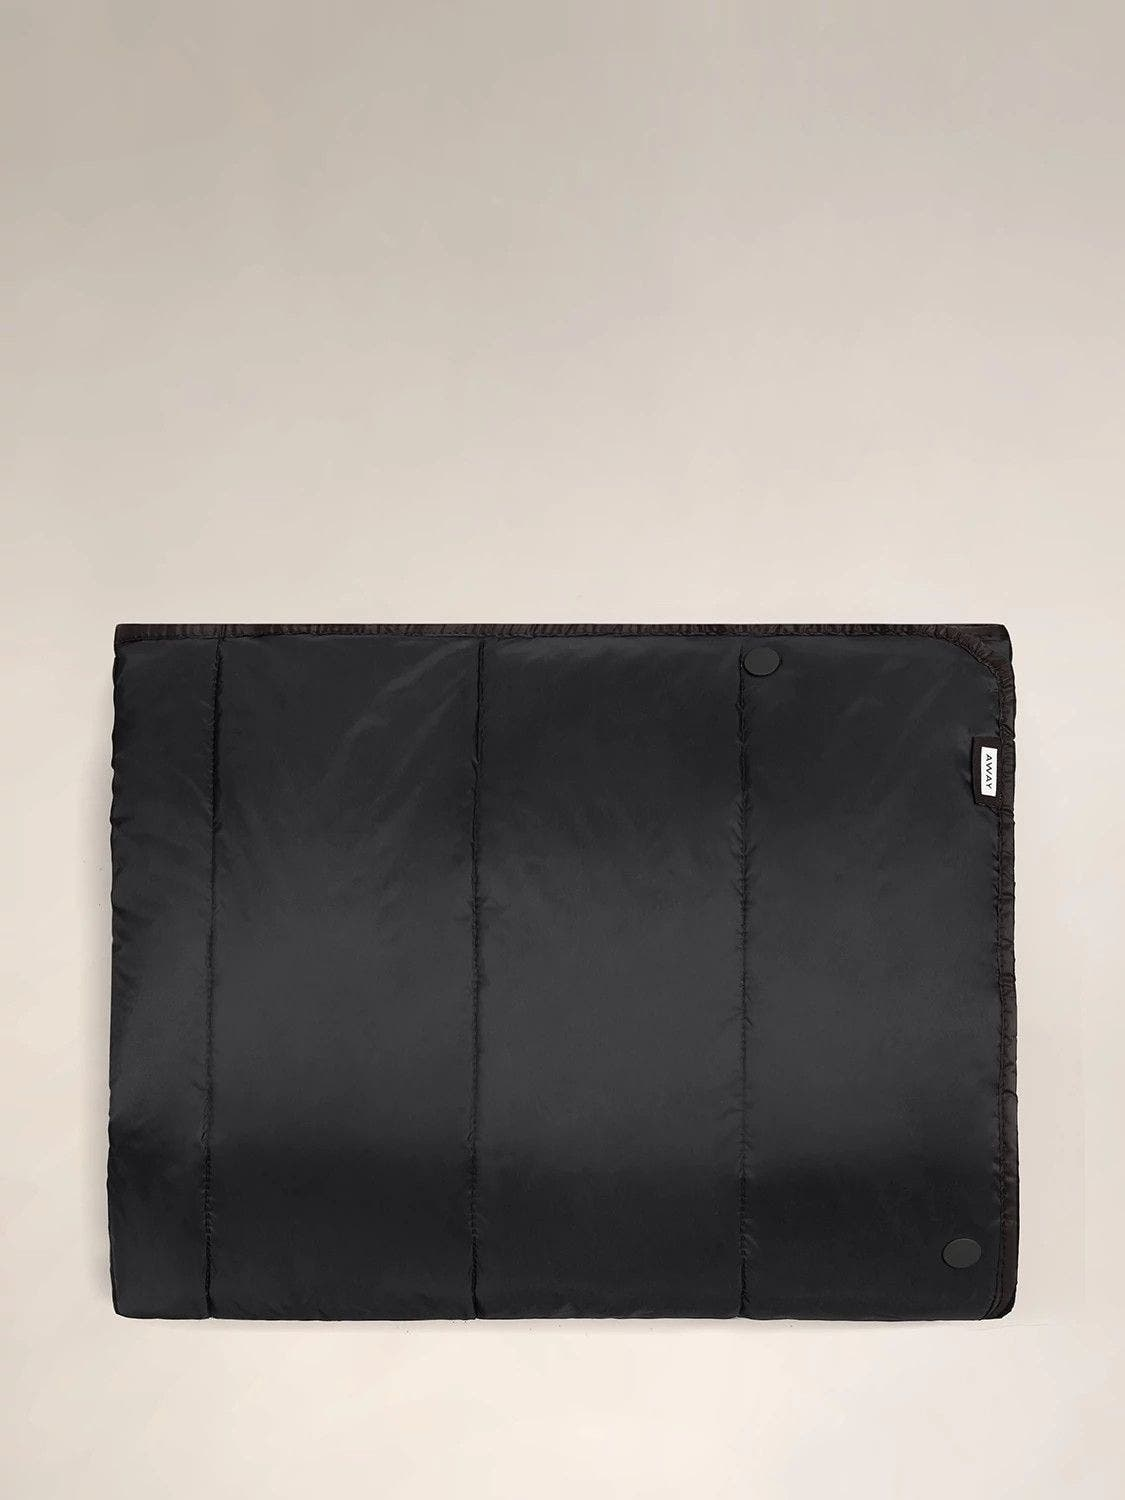 A black Away travel blanket laid flat front side up.